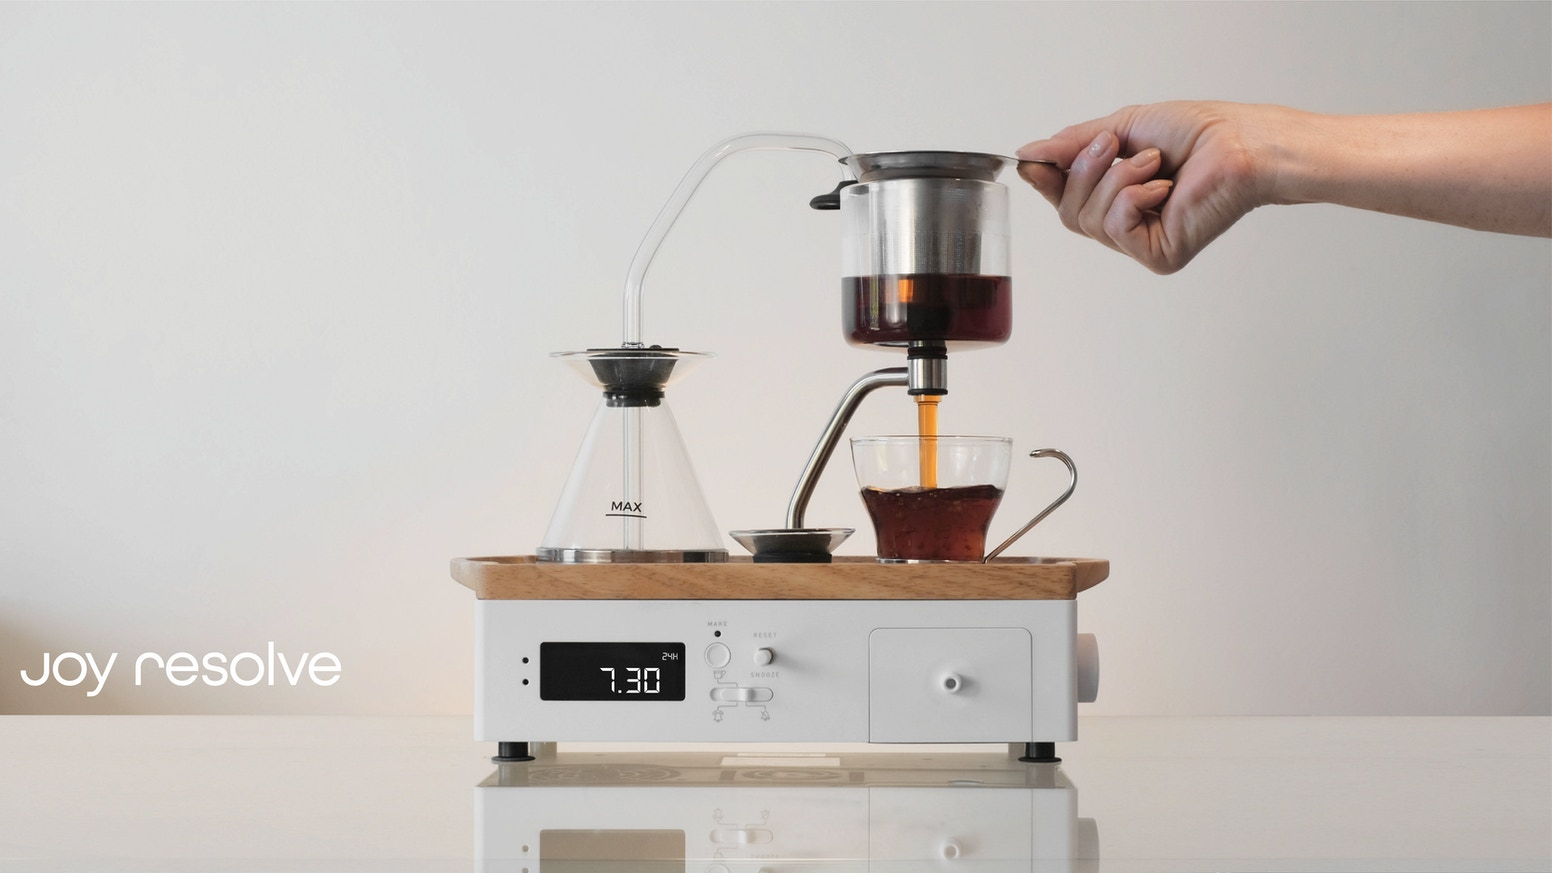 Automatic Immersion Brewer with Alarm Clock Functionality & Wireless Charging